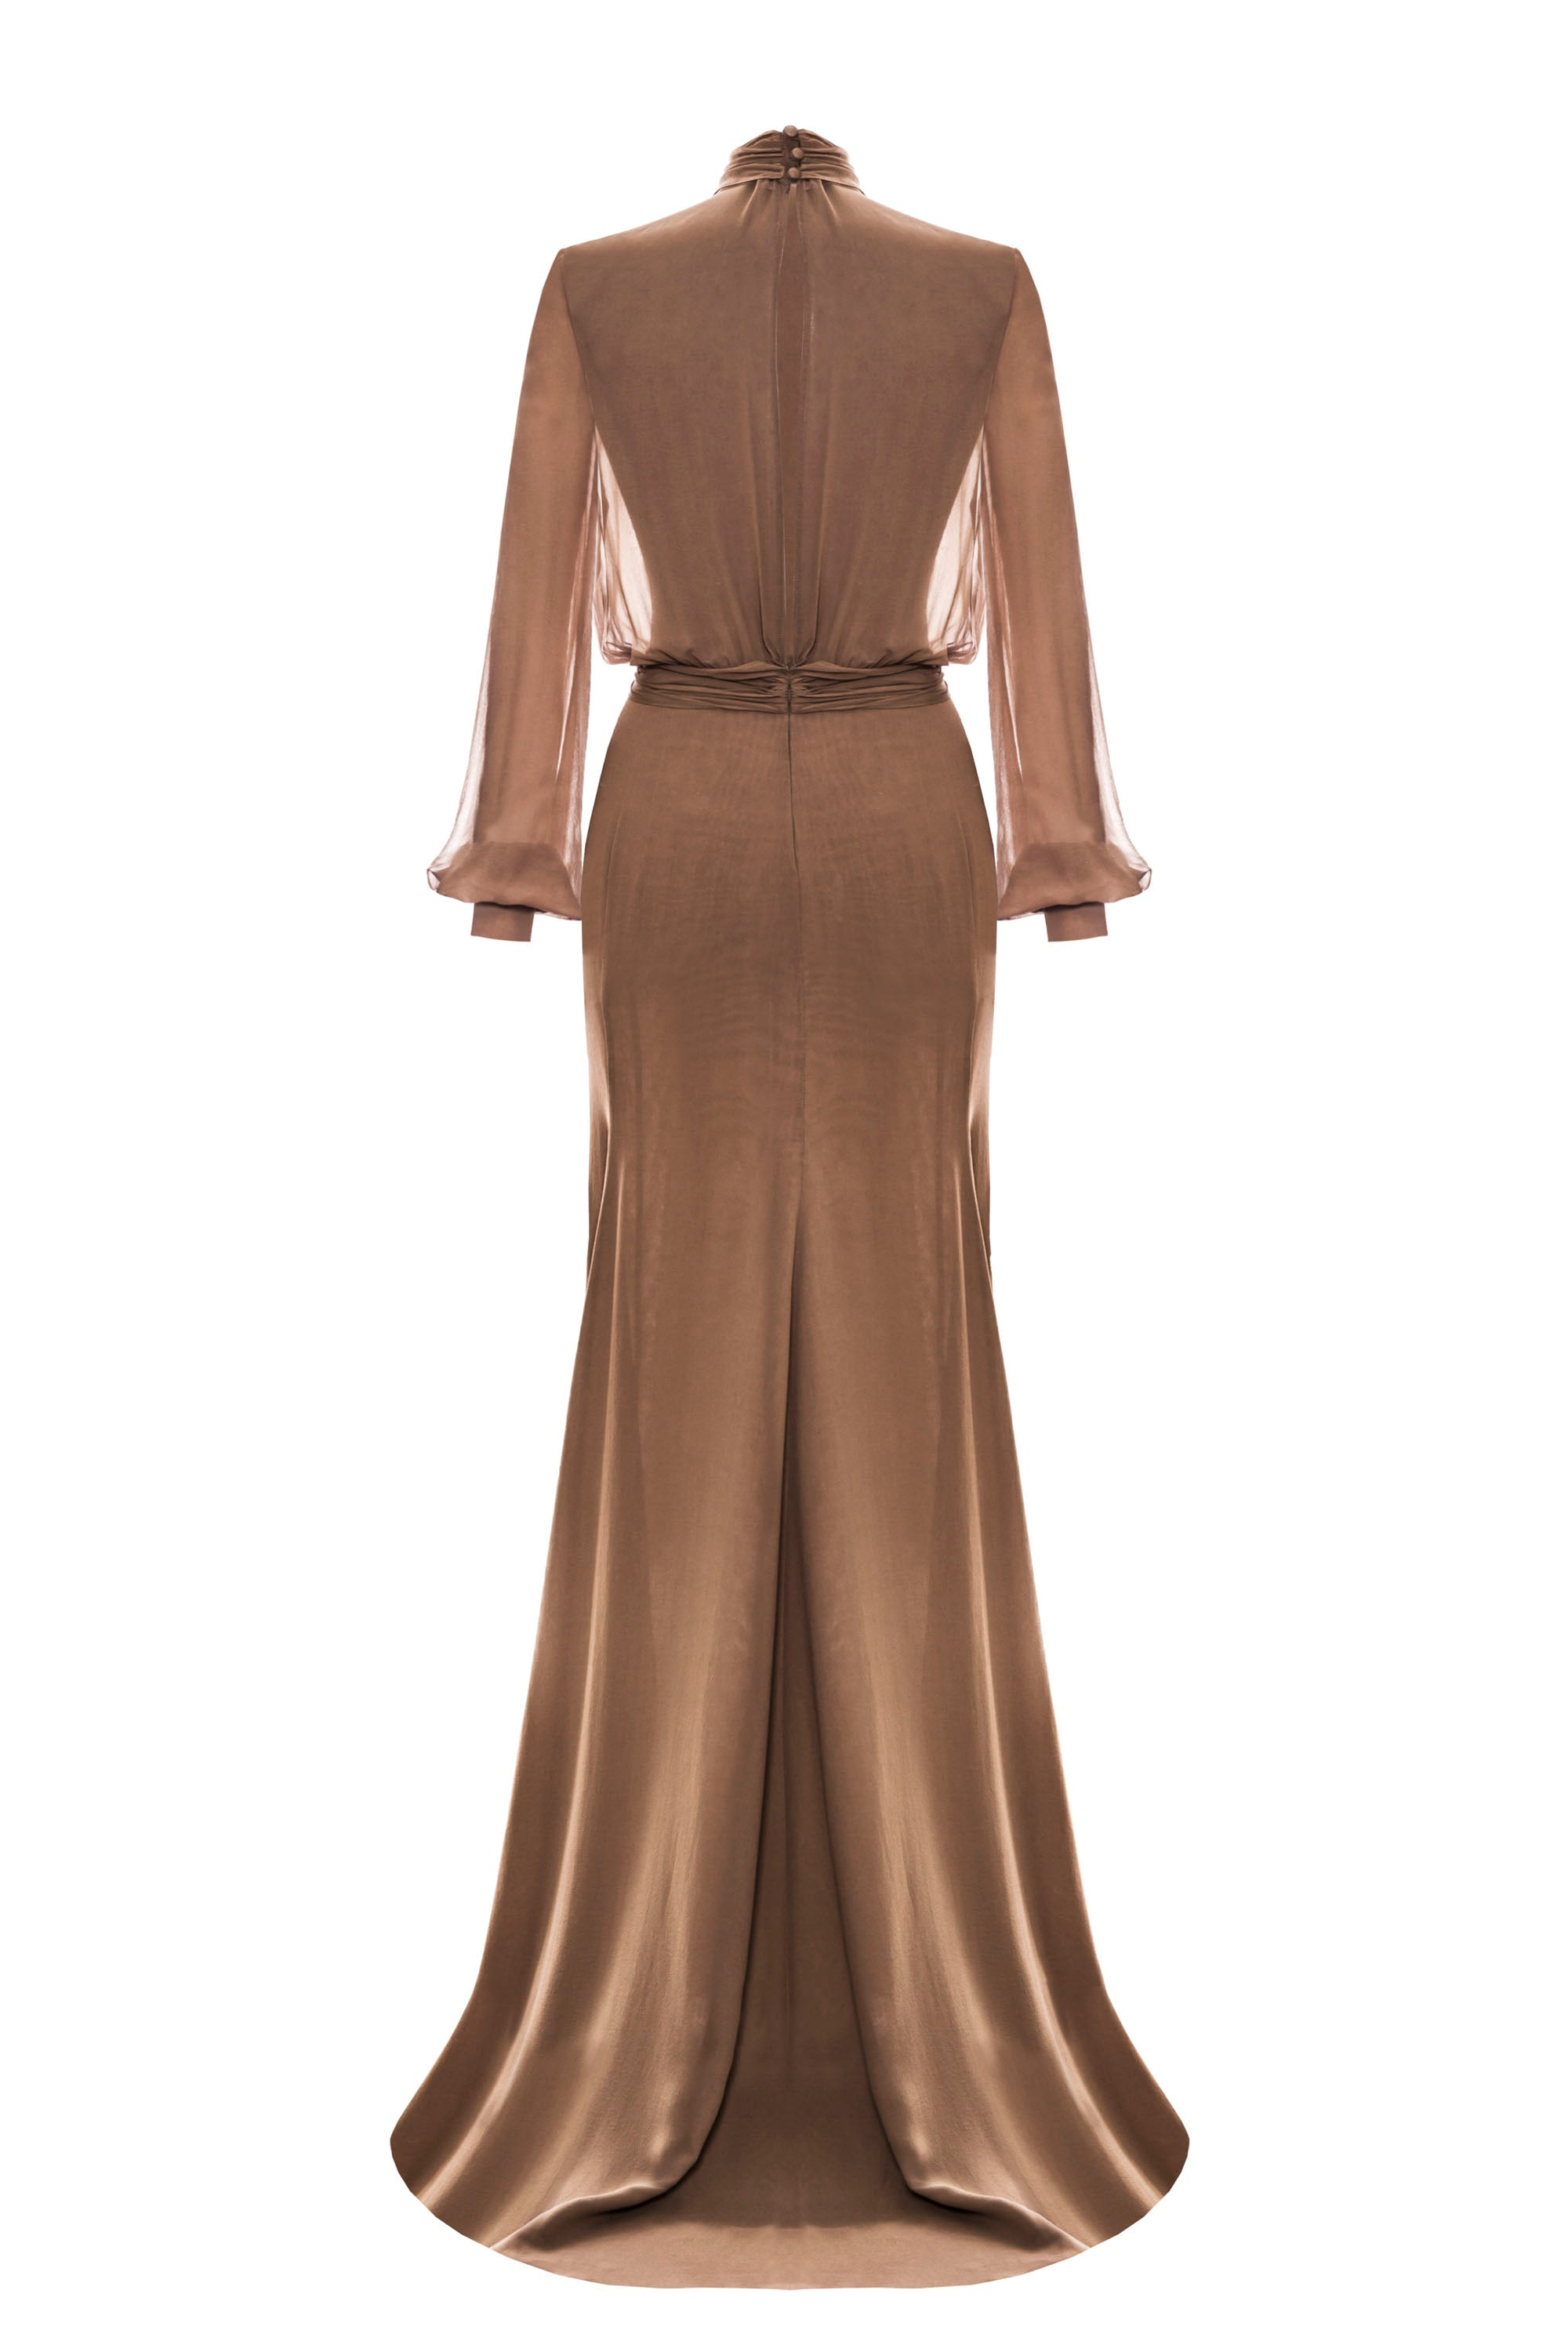 Gown RTWED10-04